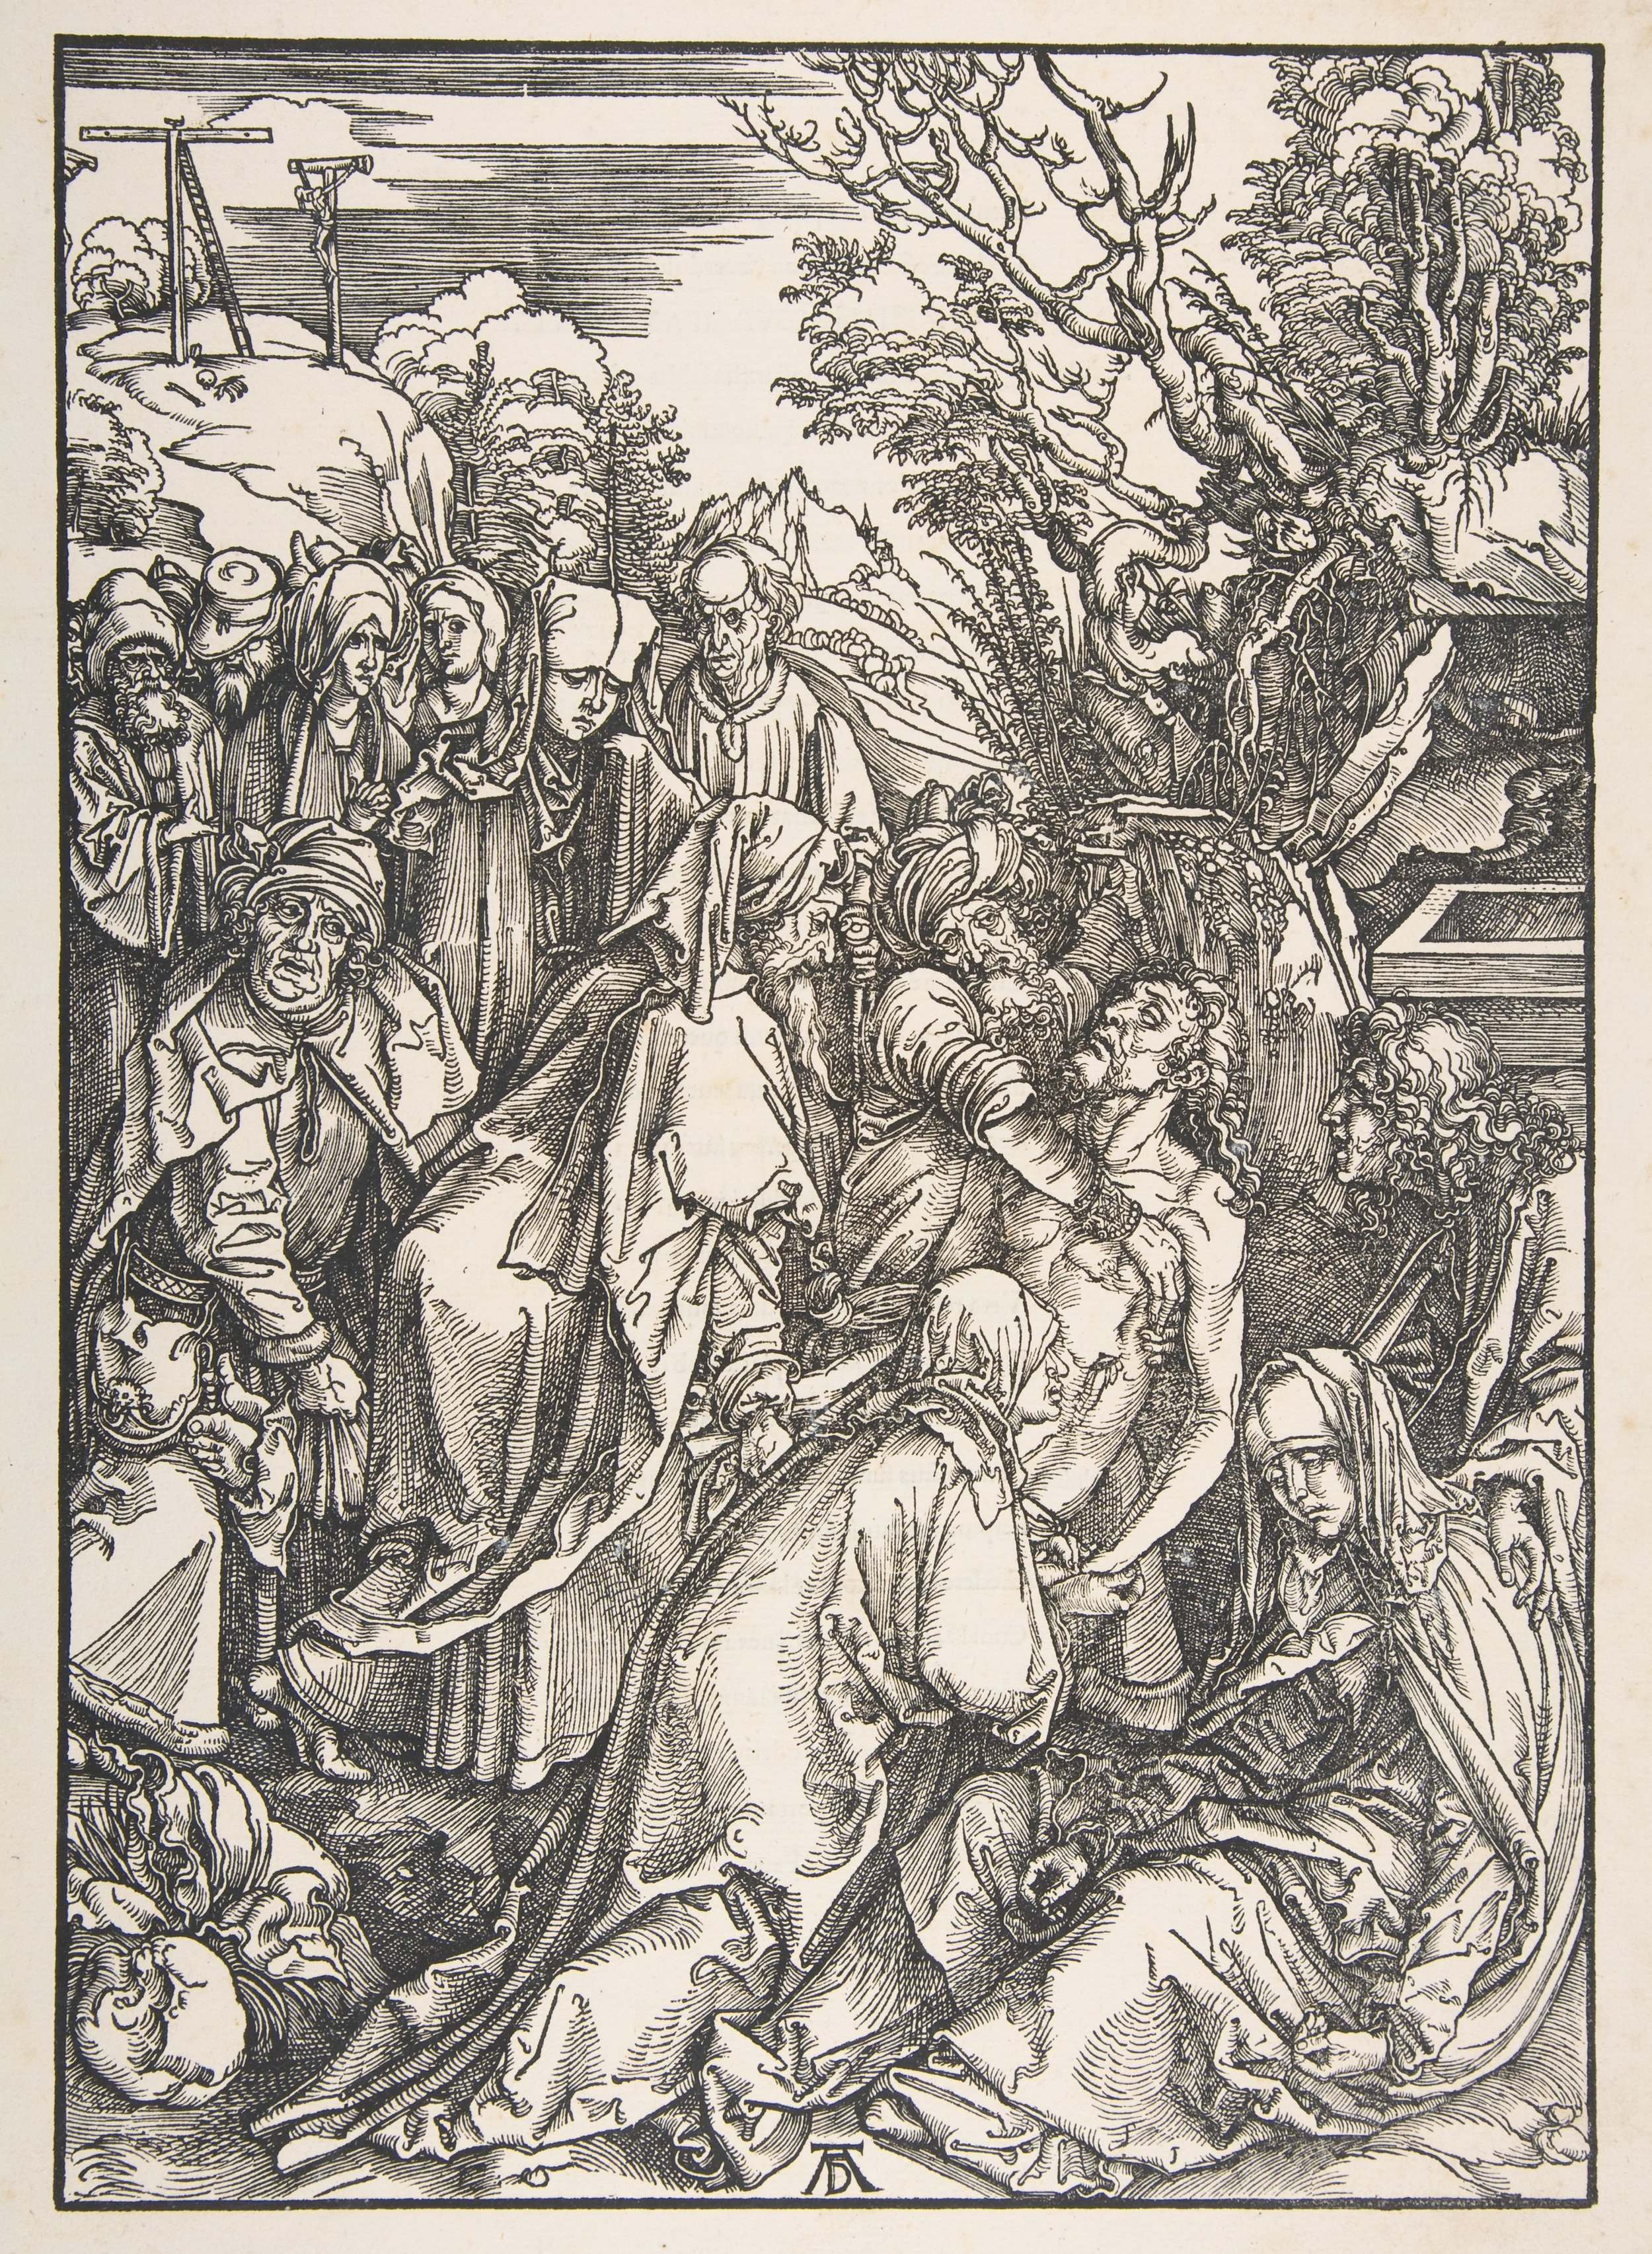 Albrecht Dürer, The Deposition of Christ from the Large Passion, Woodcut, 17 5/16 x 12 ins (43.9 x 30.5 cms)